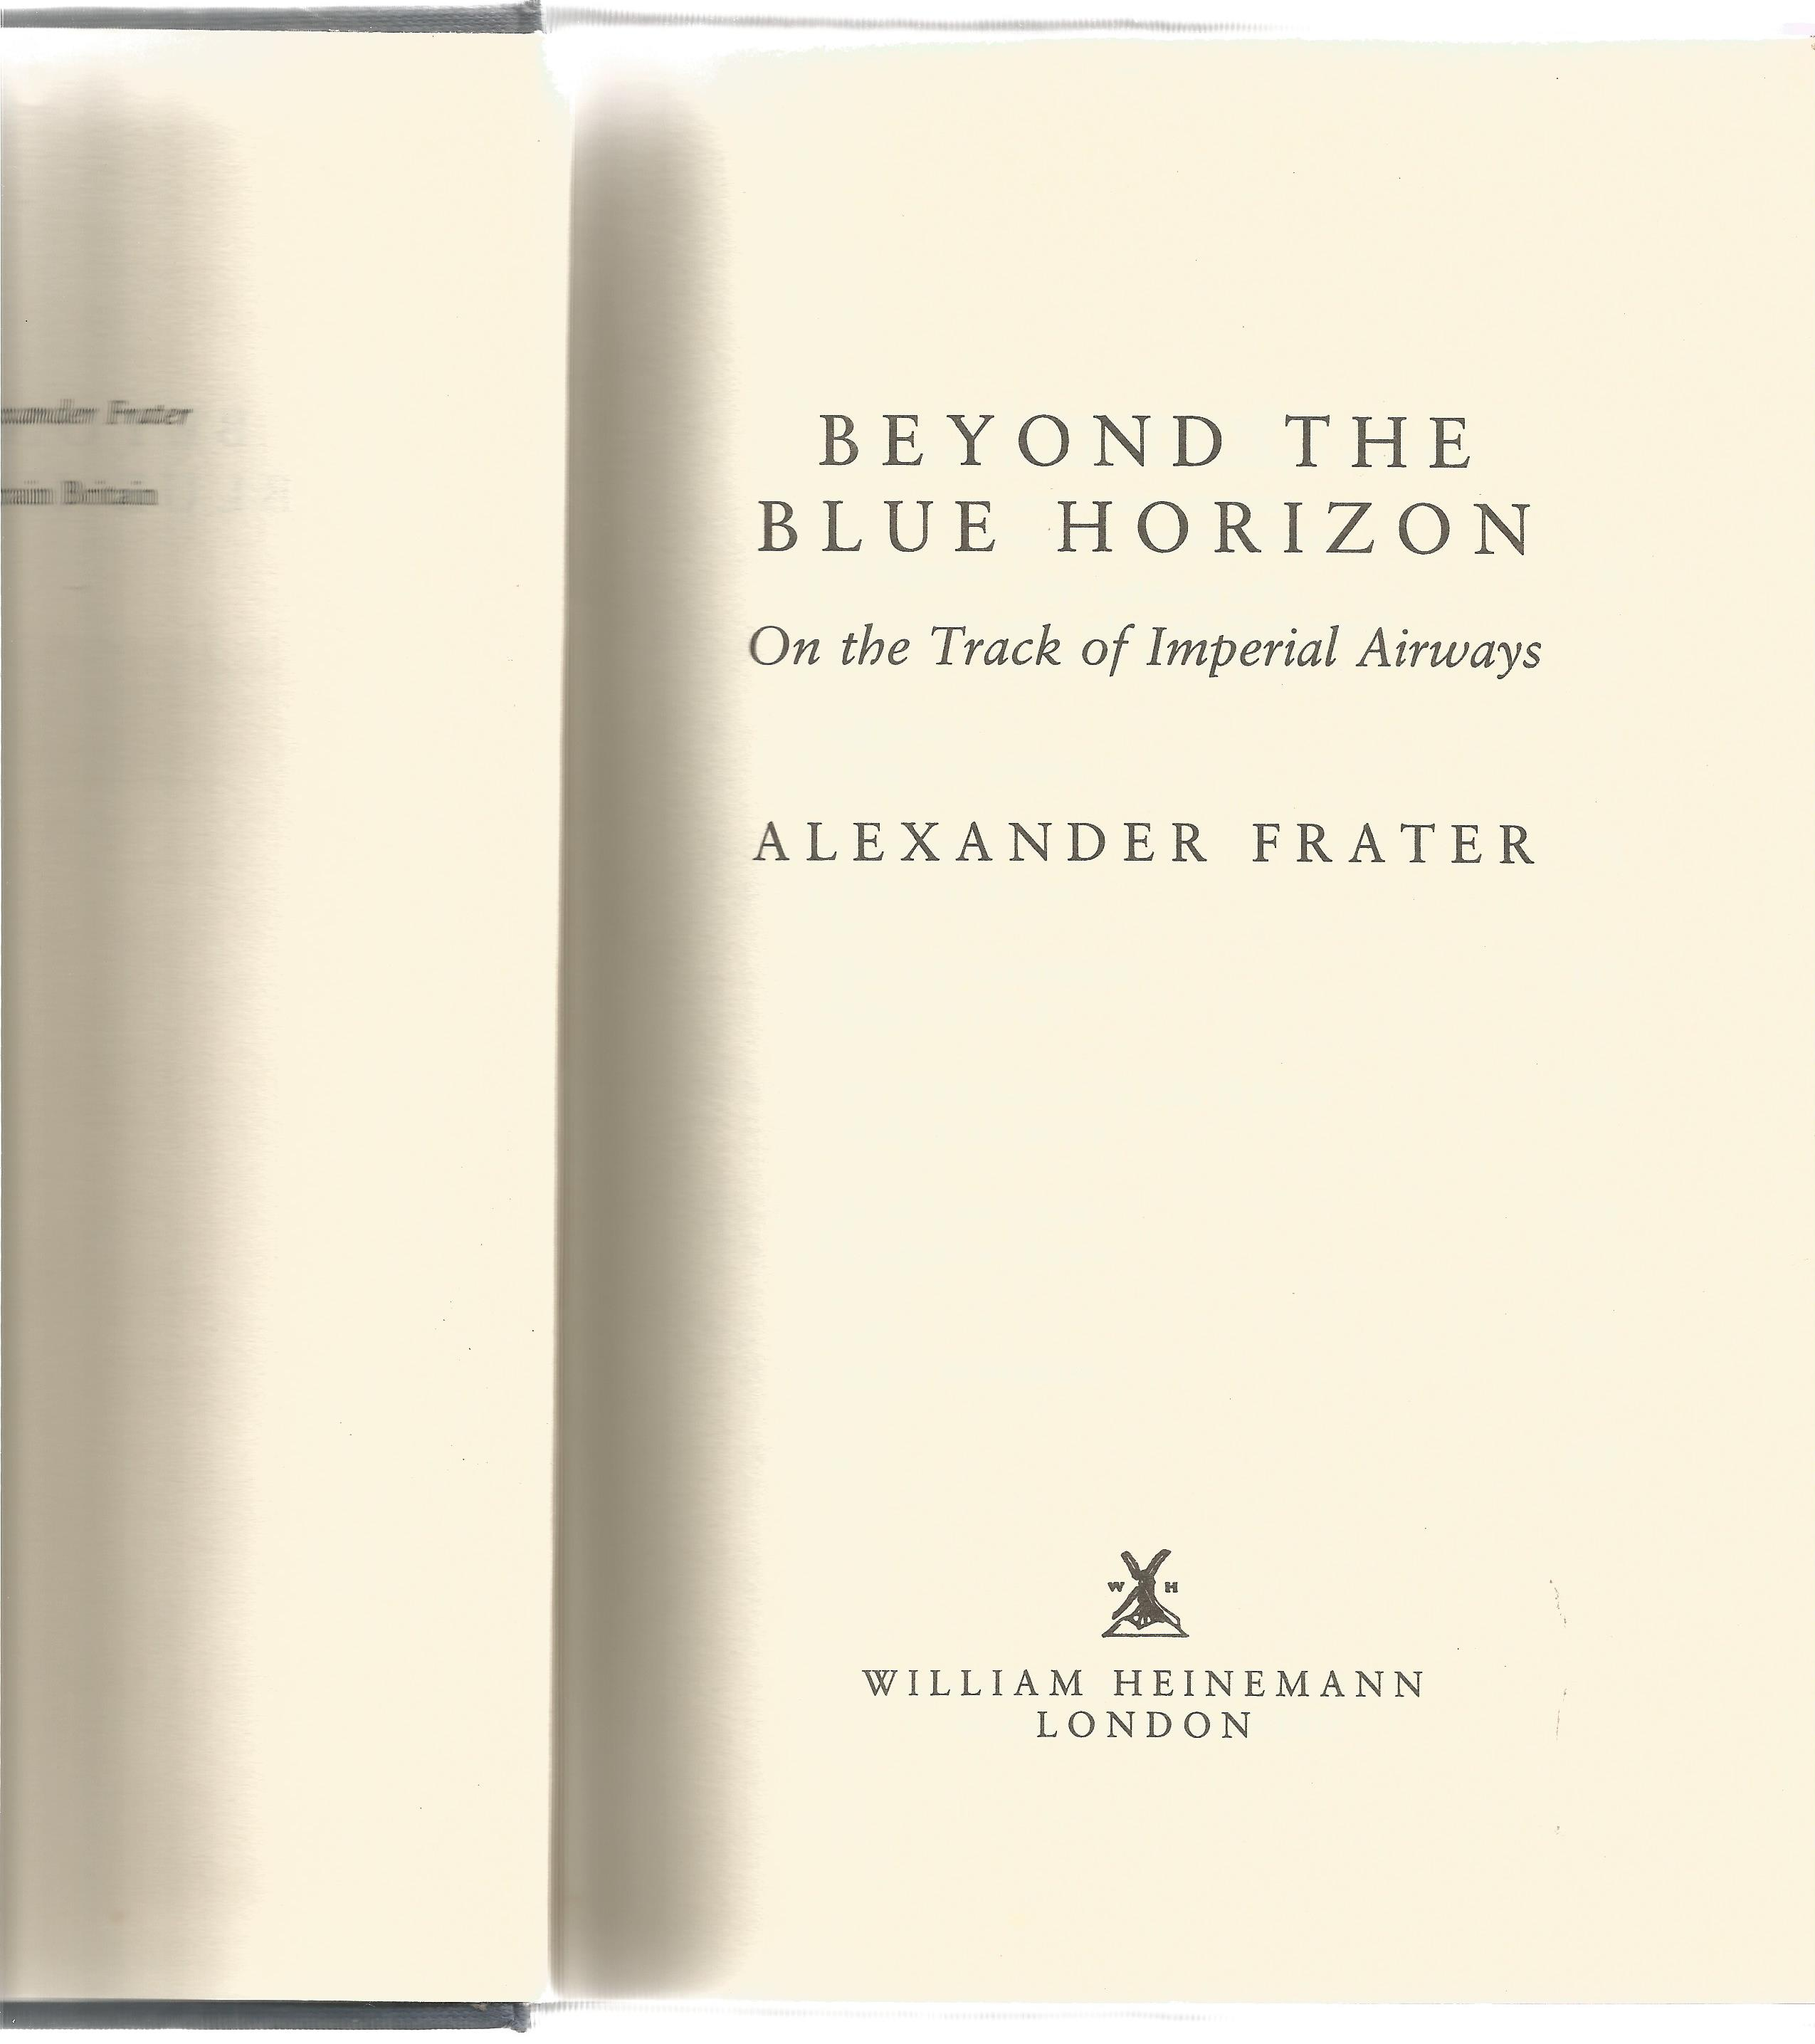 Alexander Frater. Beyond The Blue Horizon on the track of imperial railways. A WW2 First edition - Image 2 of 3